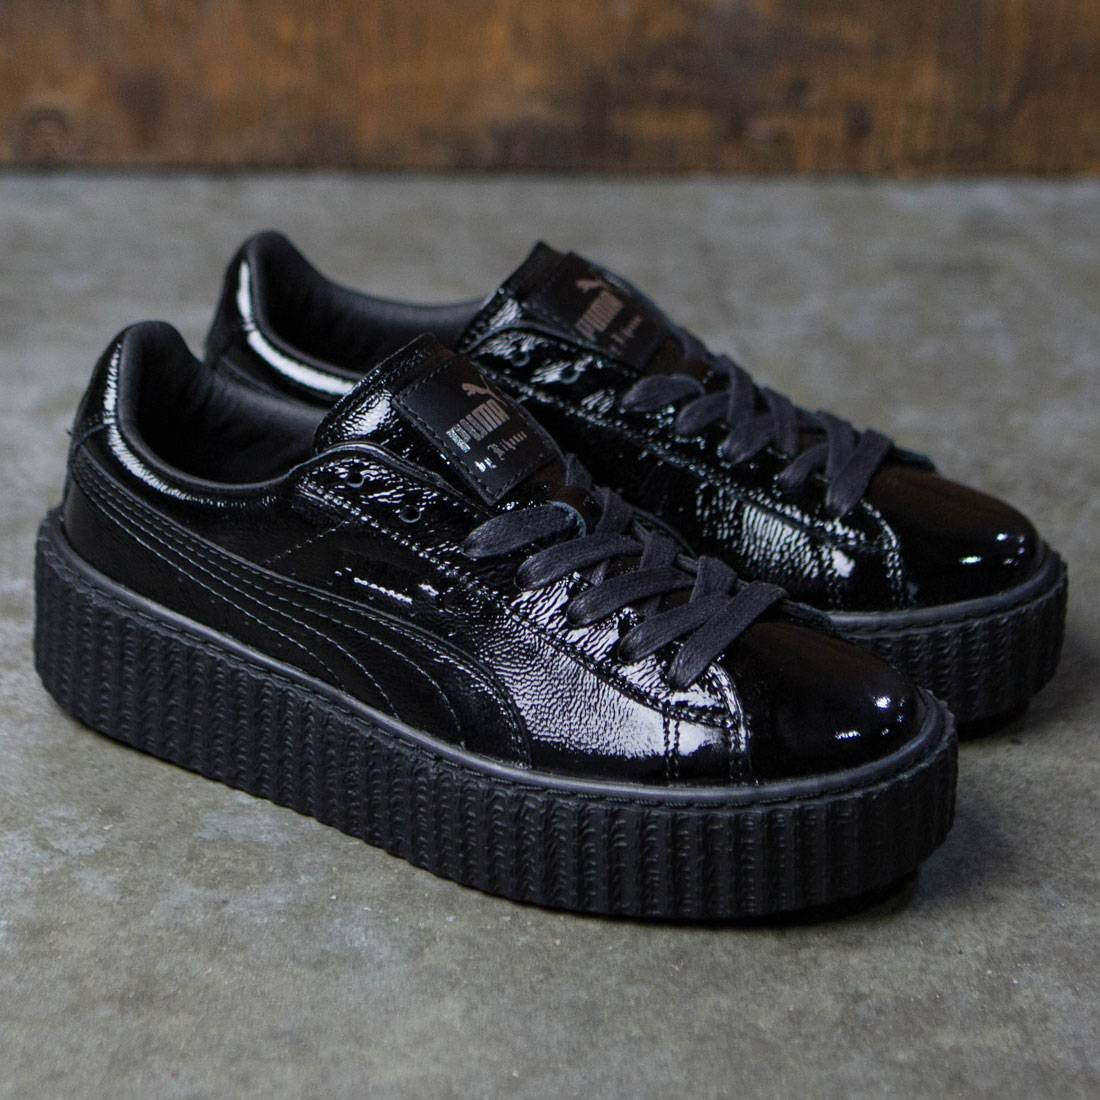 finest selection 265f3 cd61d Puma x Fenty By Rihanna Women Creeper - Cracked Leather (black)